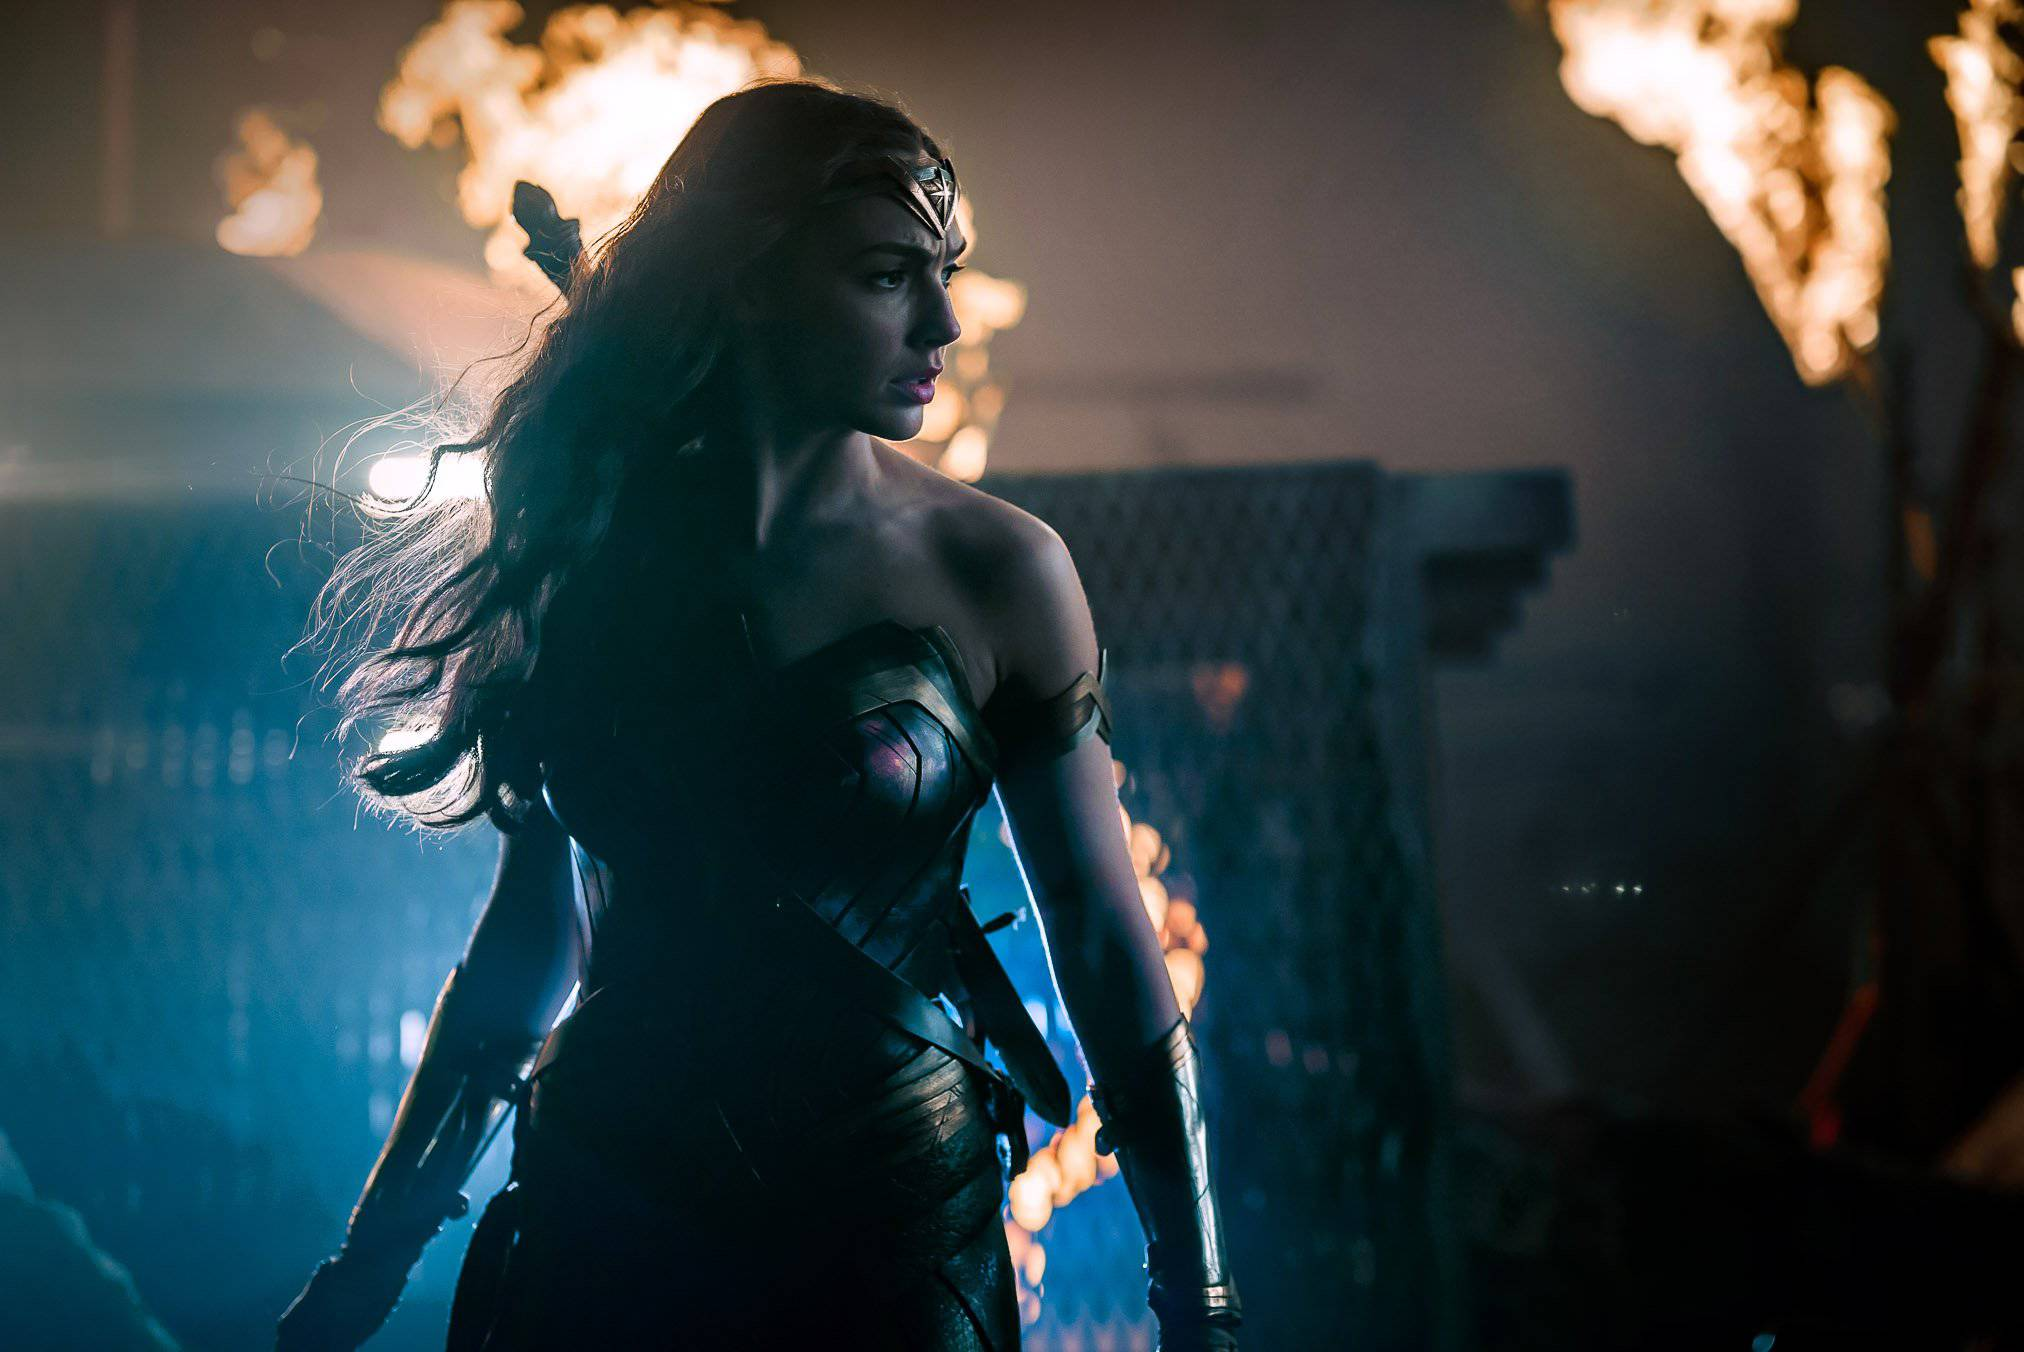 Wonder Woman Beaten Justice League Zack Snyder Rev...